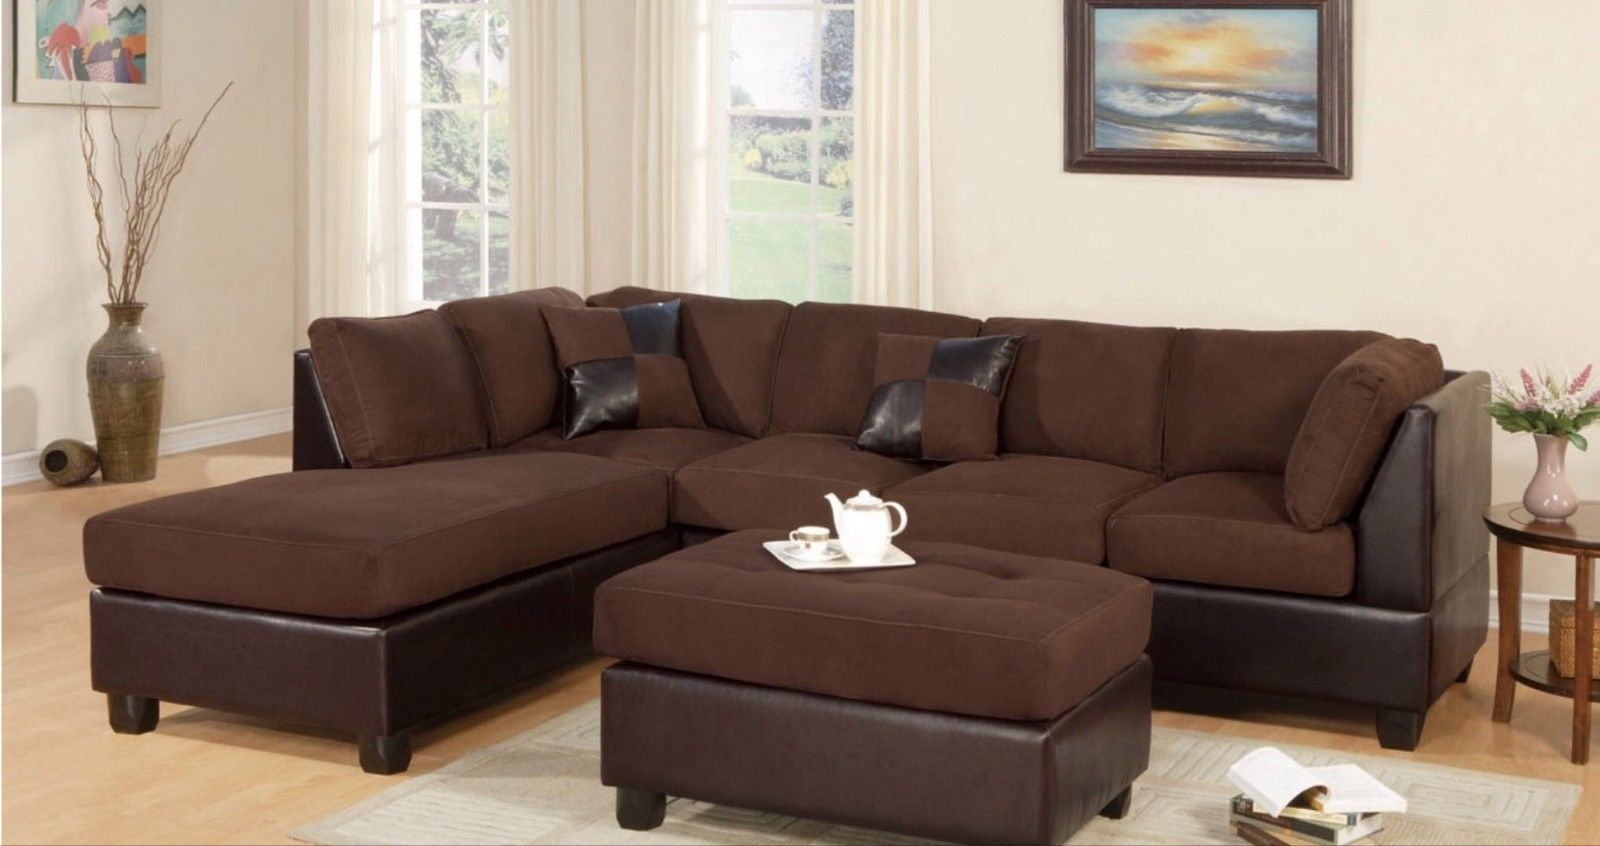 Sectional Sofa Modern Fabric Microfiber Faux Leather Sectional Sofa 3pc 6 Colors Availble Couch Fur Modern Sofa Sectional Brown Sectional Sofa Sectional Sofa